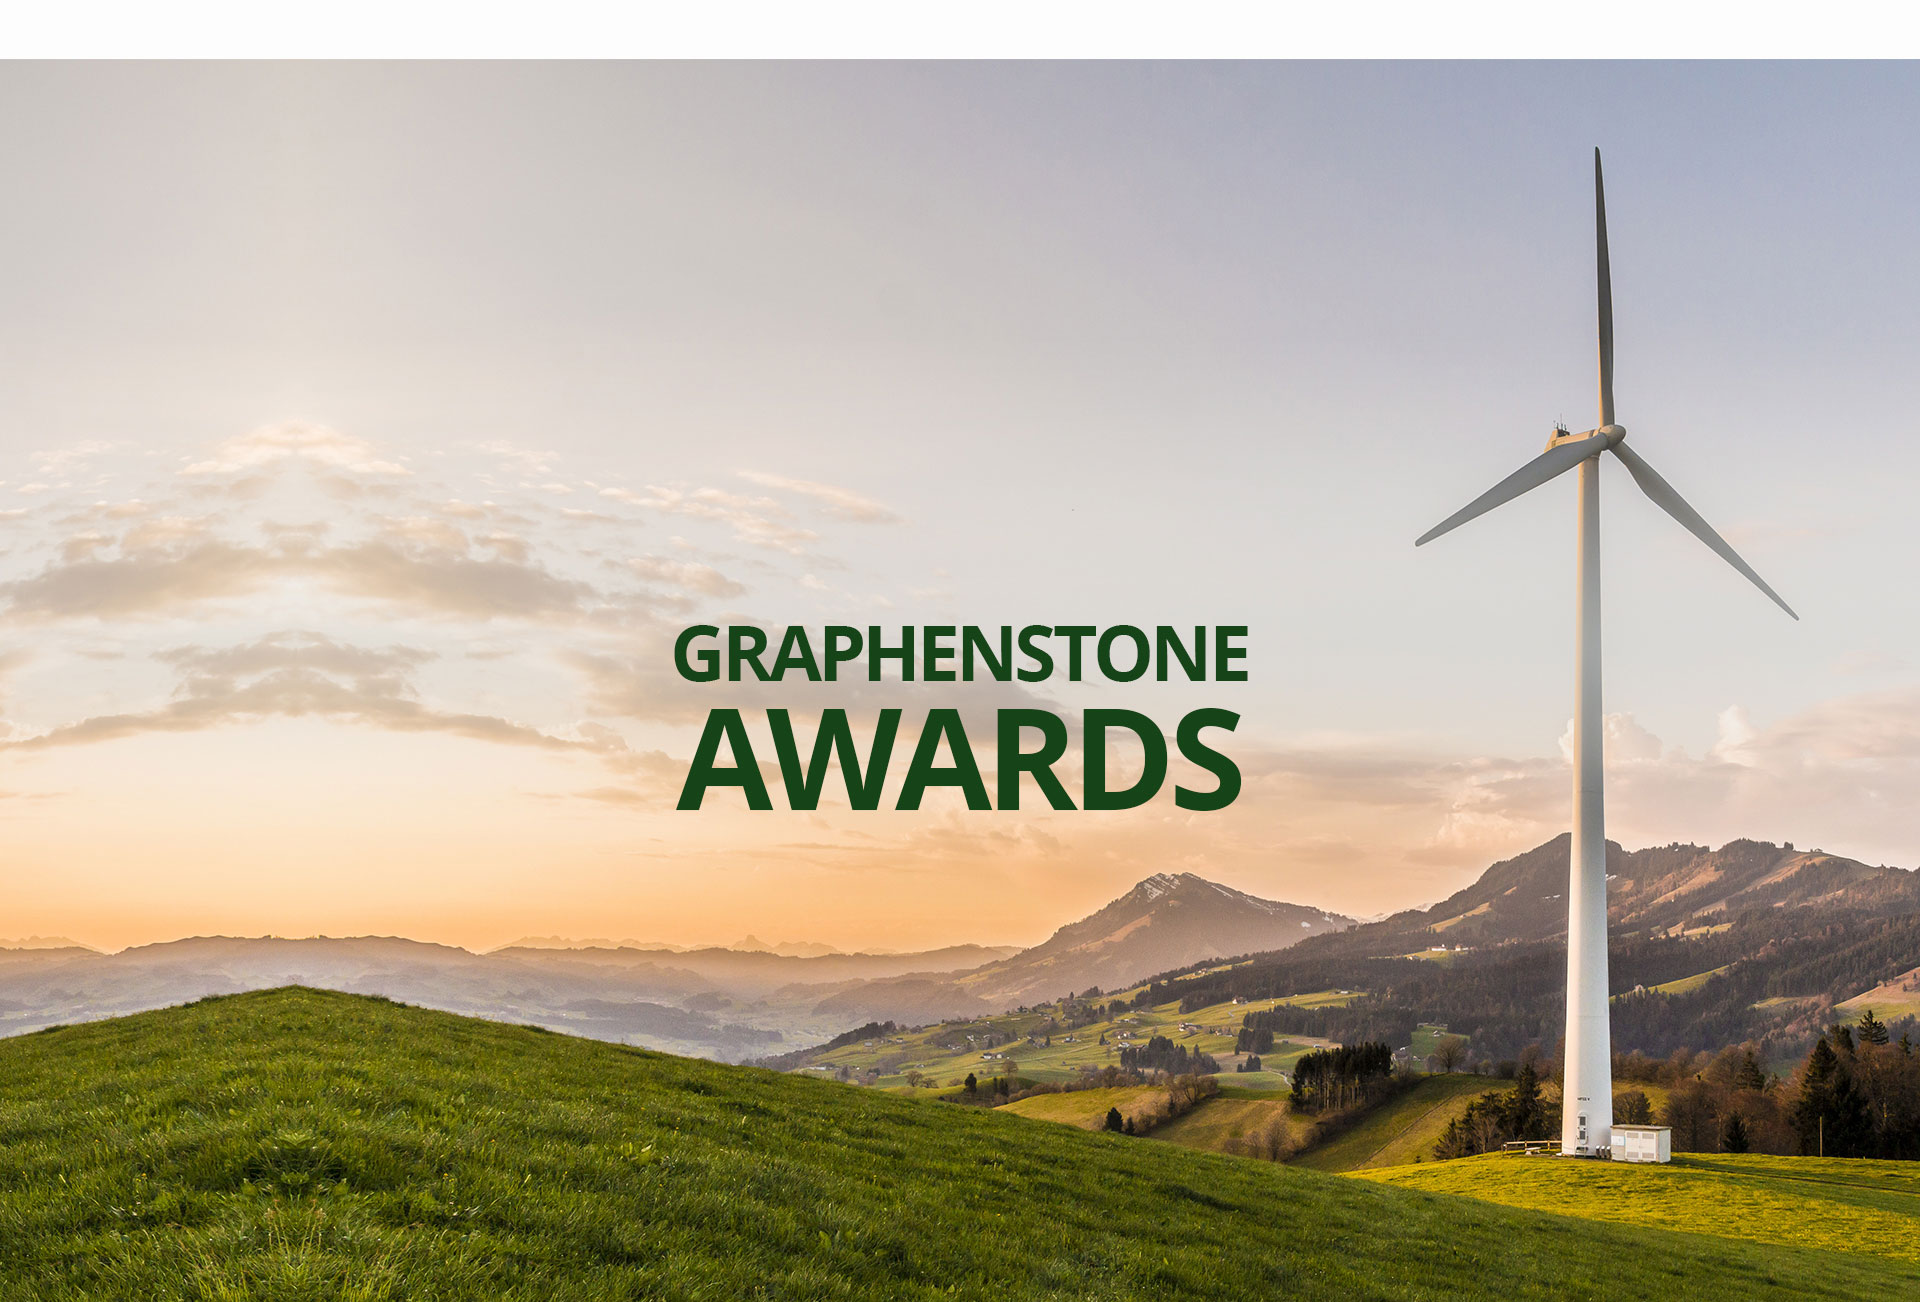 Graphenstone Awards and honours